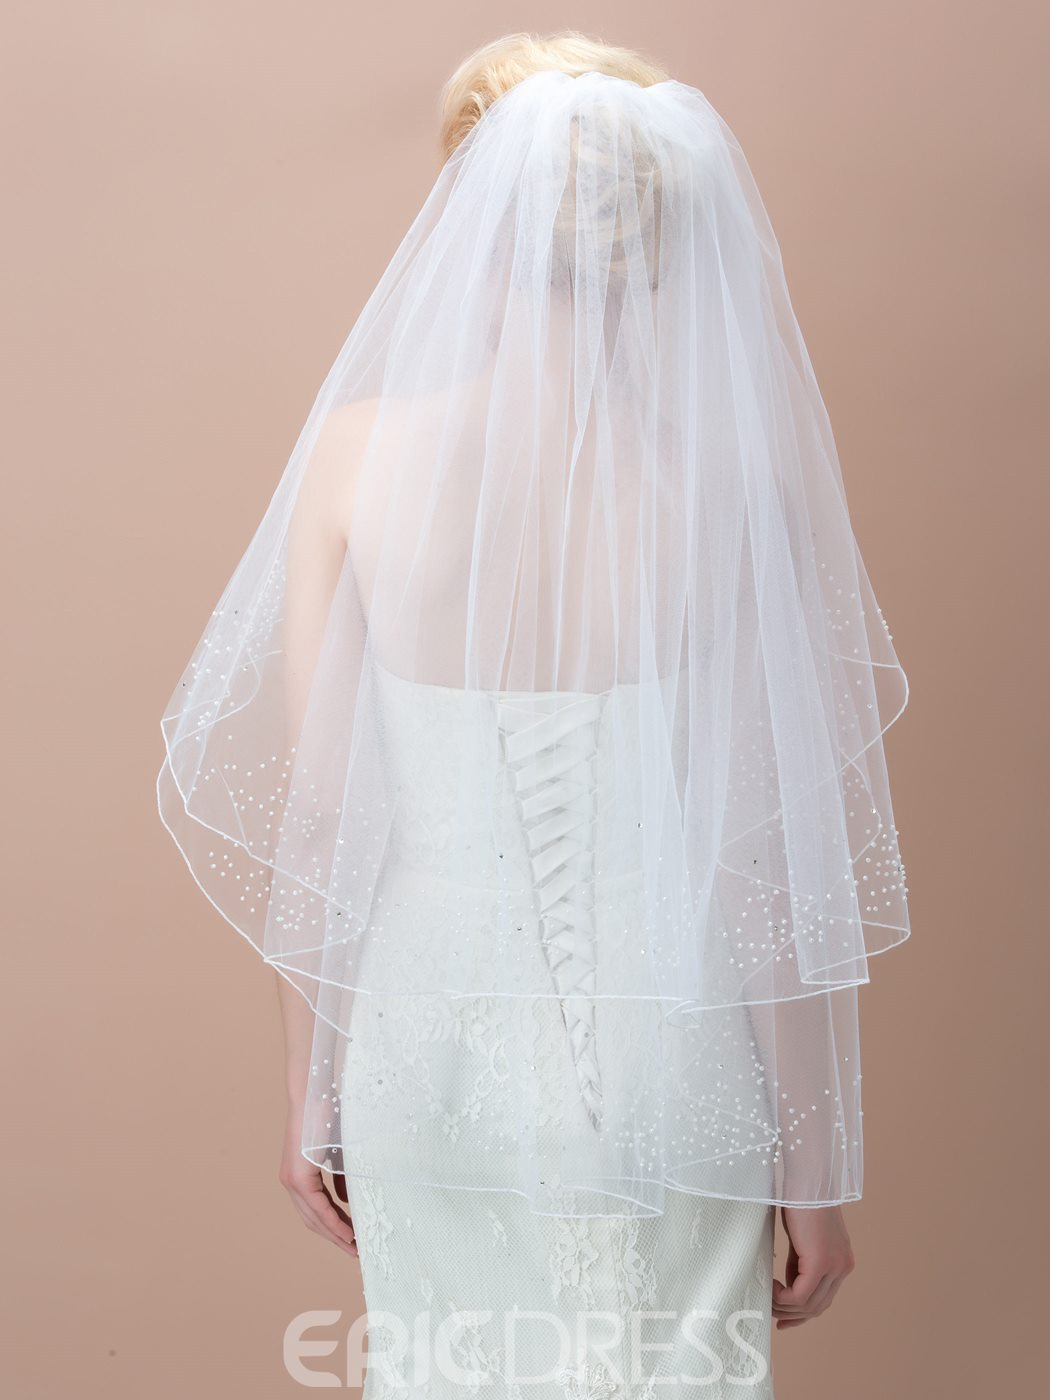 Ericdress Charming White Bridal Veil